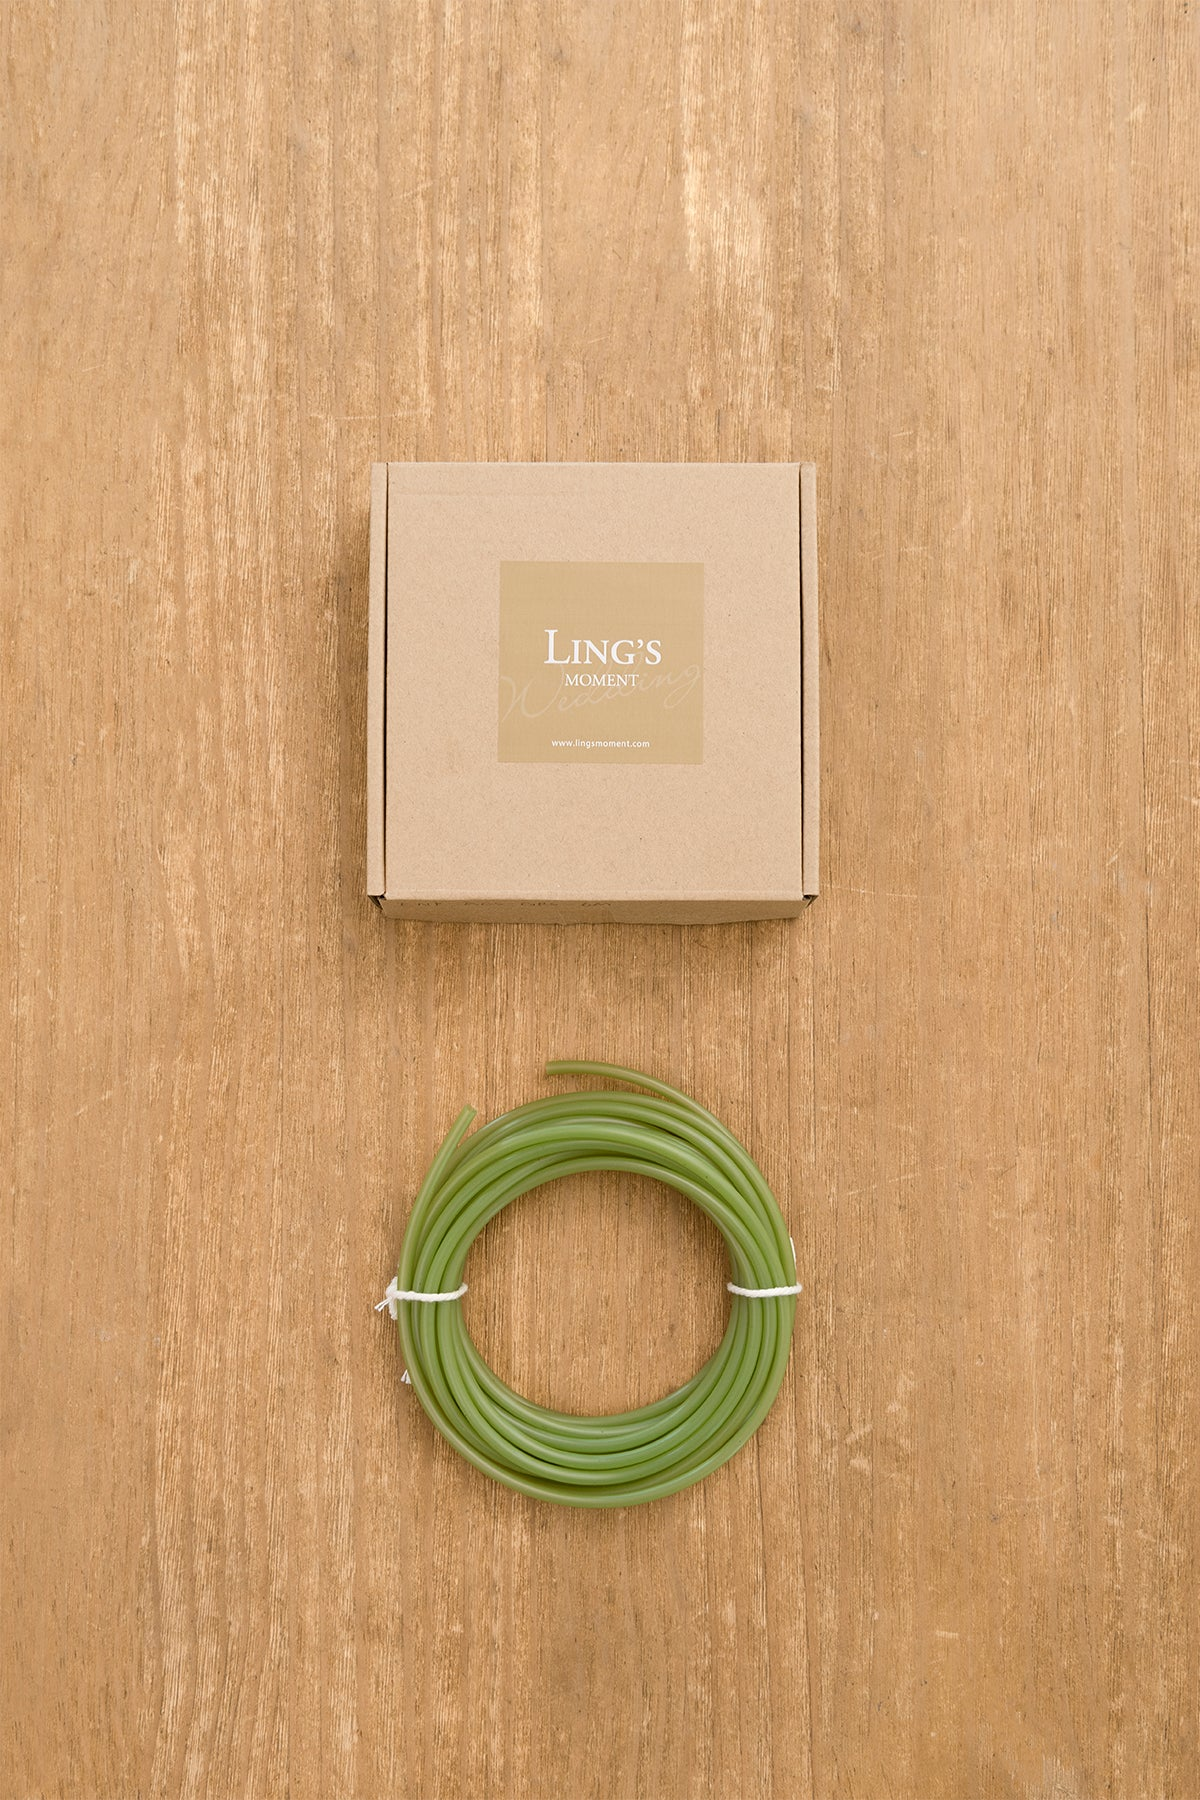 DIY Kits - Green Tubing Roll for Bundling Stems